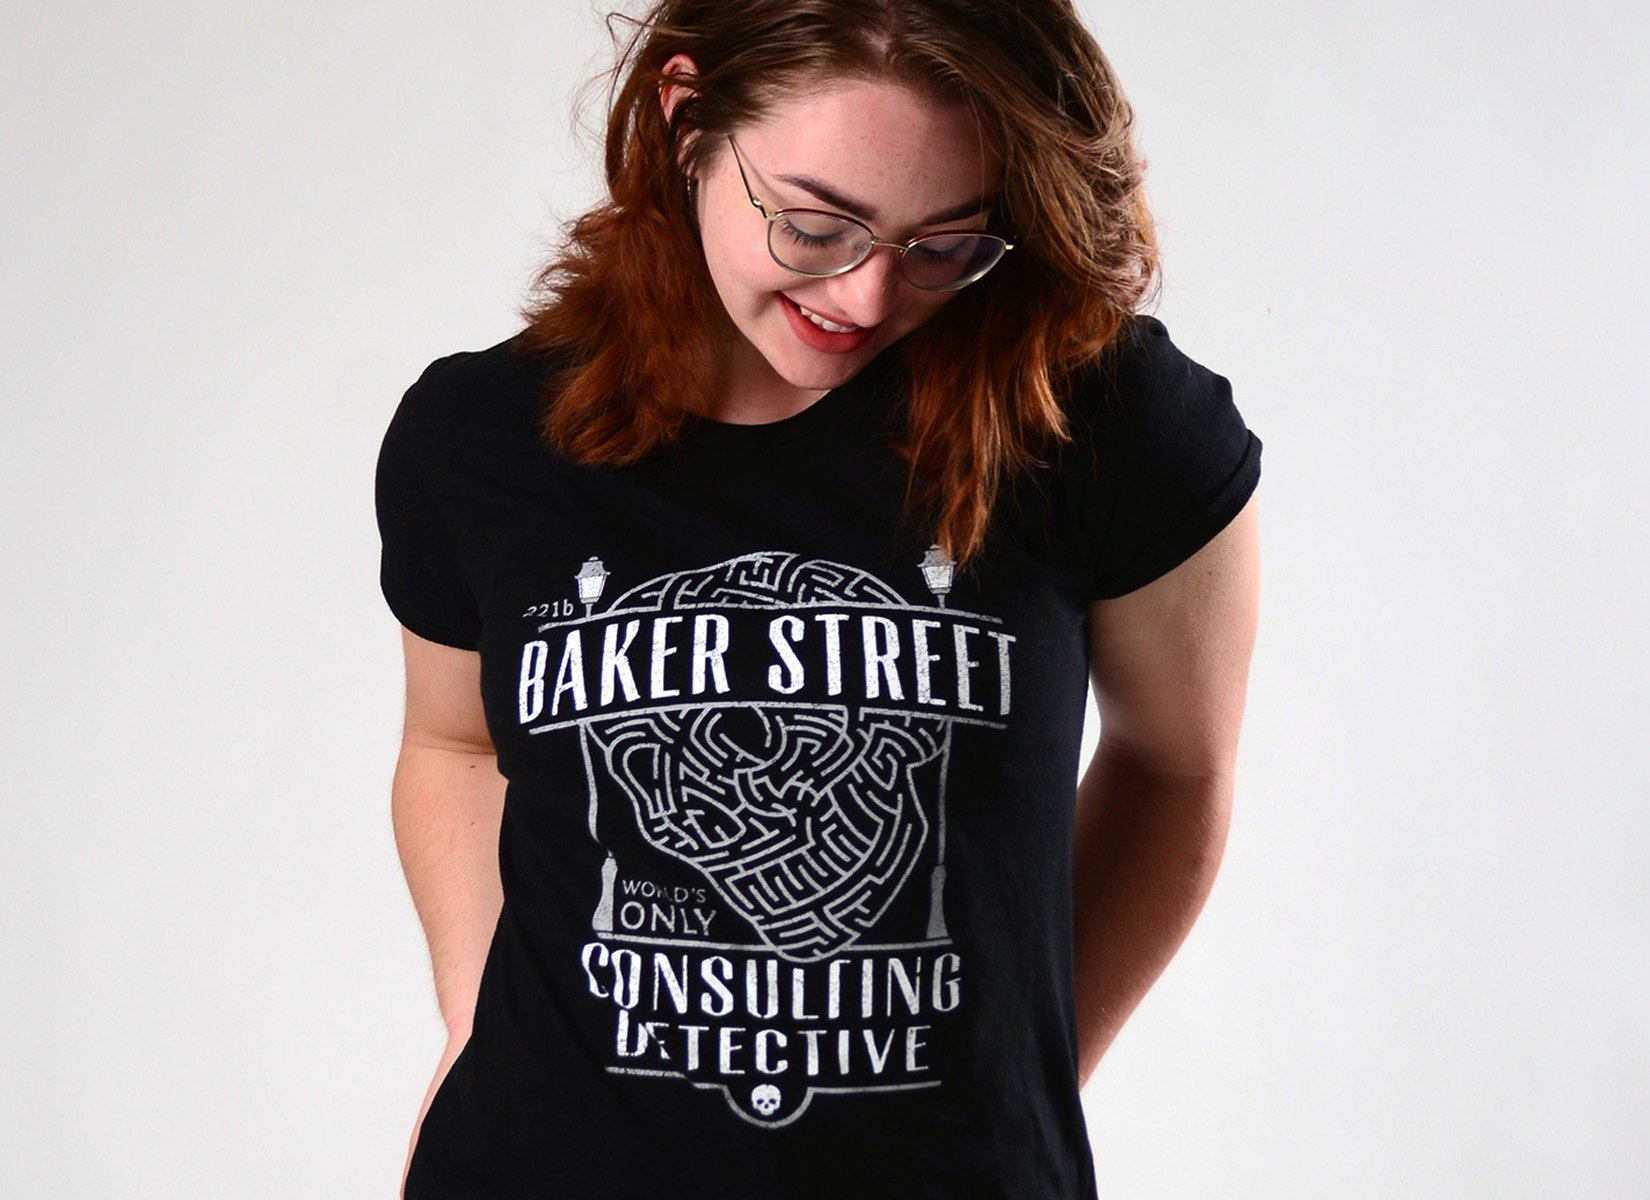 Baker Street Consulting Detective on Womens T-Shirt